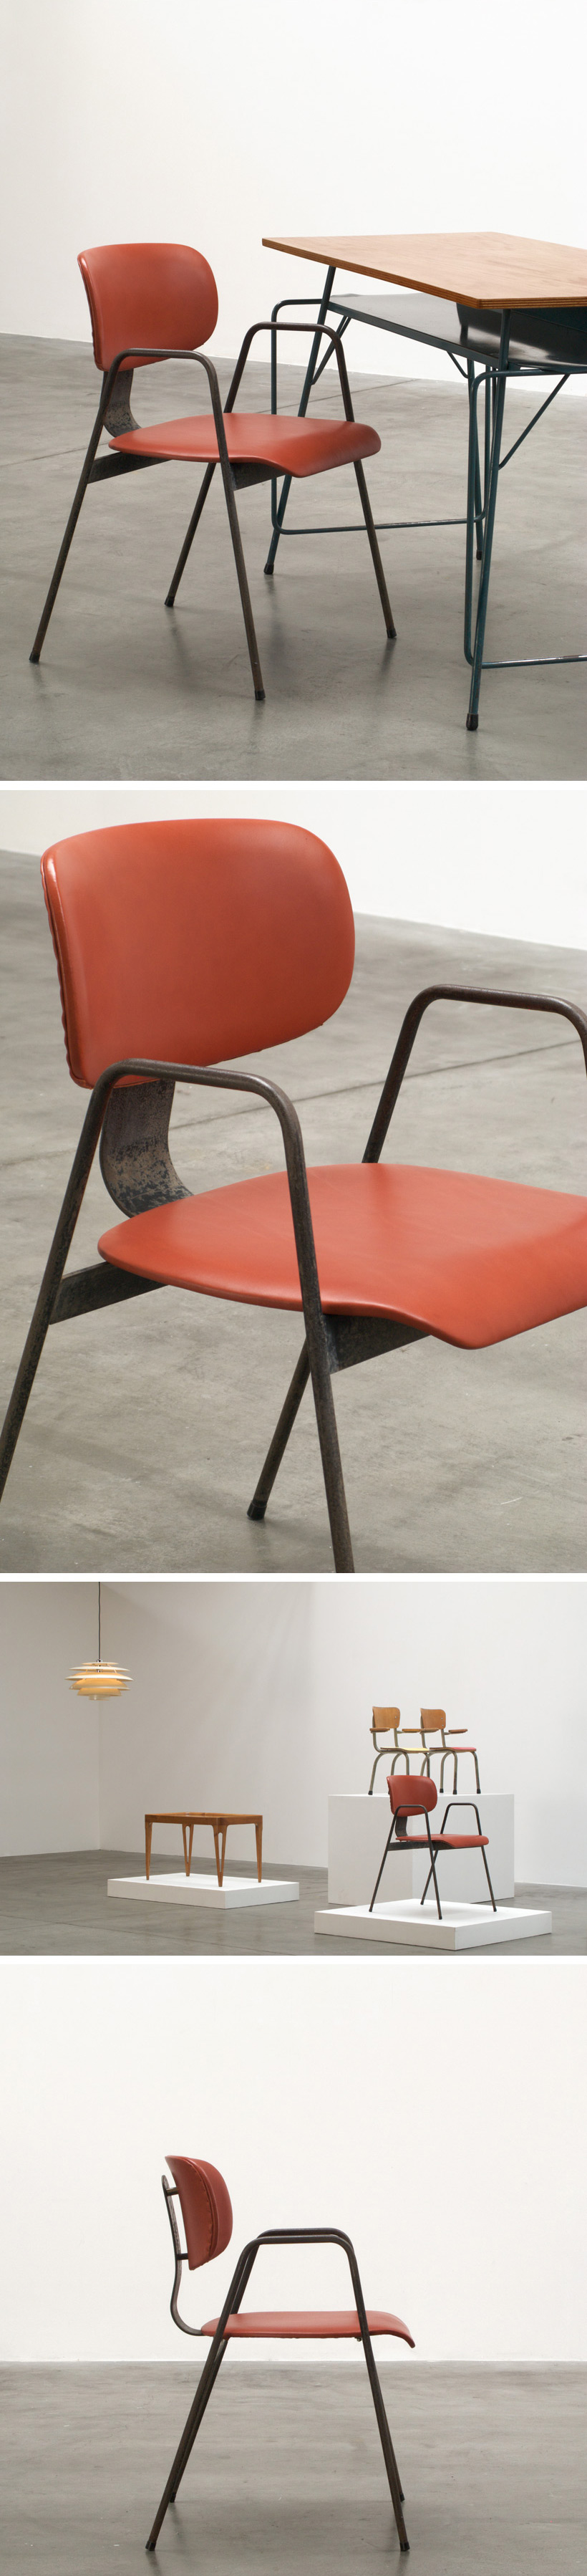 Willy Van der Meeren F2 chair Large